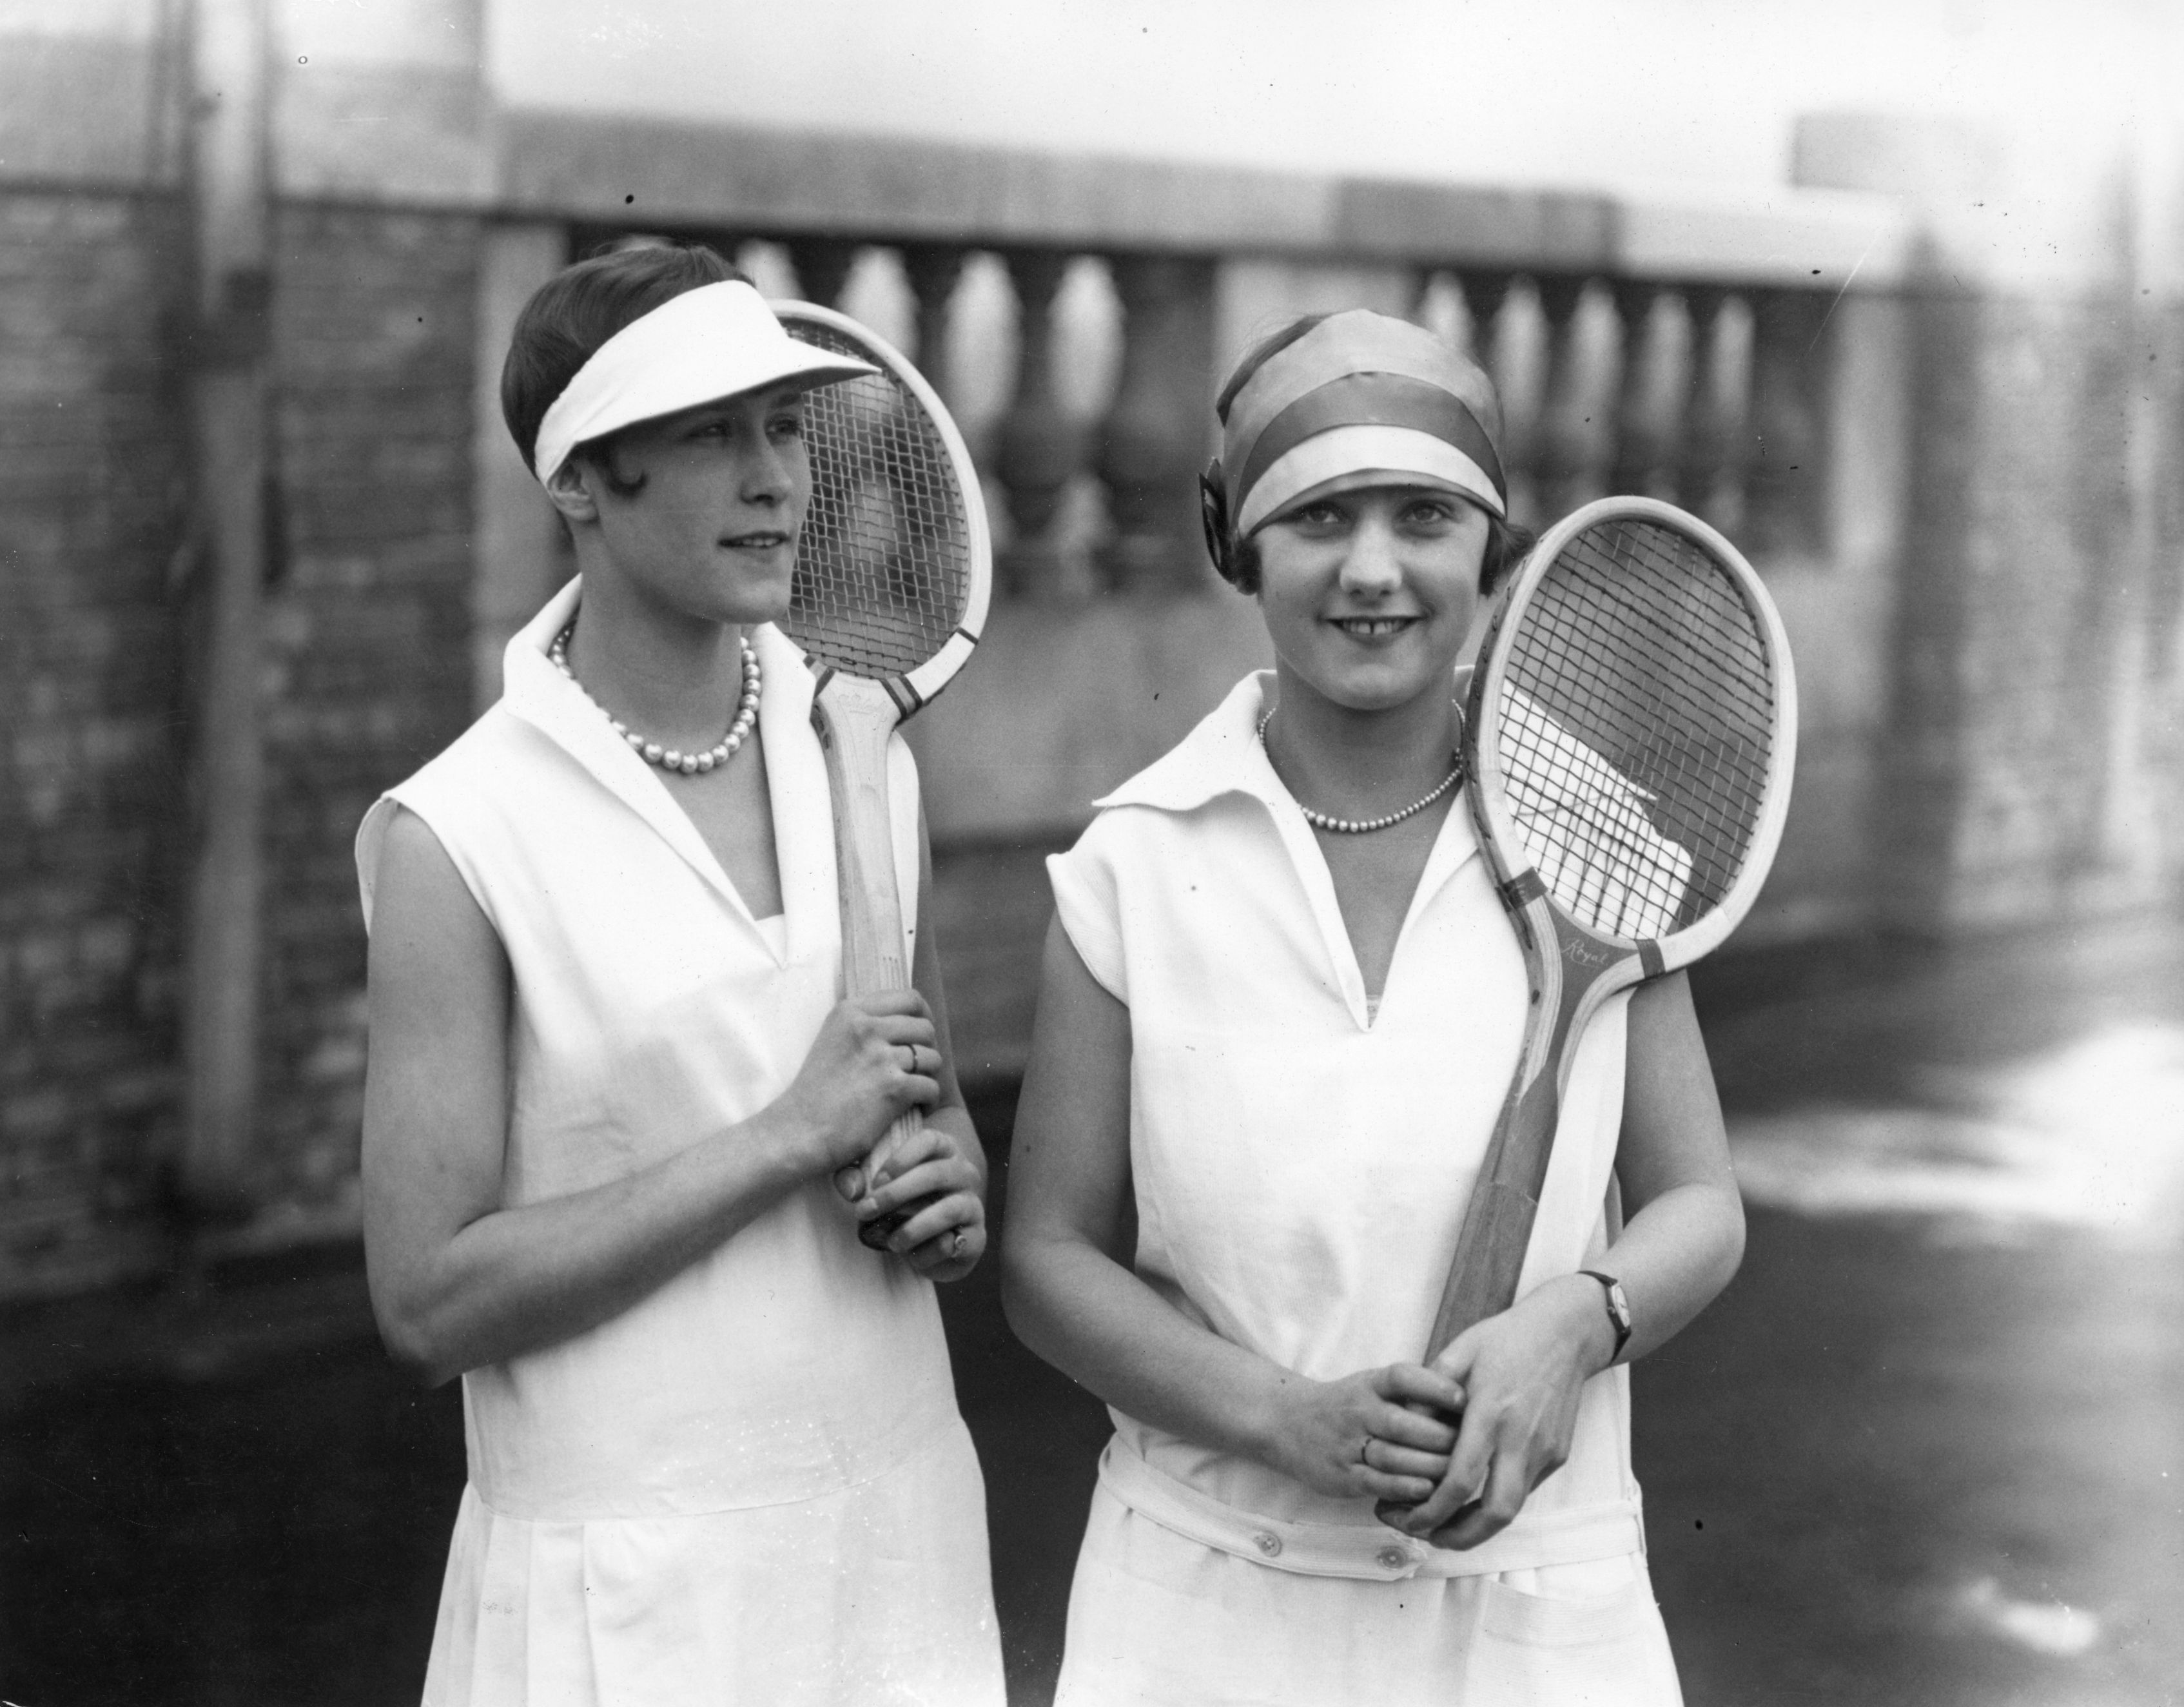 French Open Tennis Fashion Has Come A Long Way In The Last Century